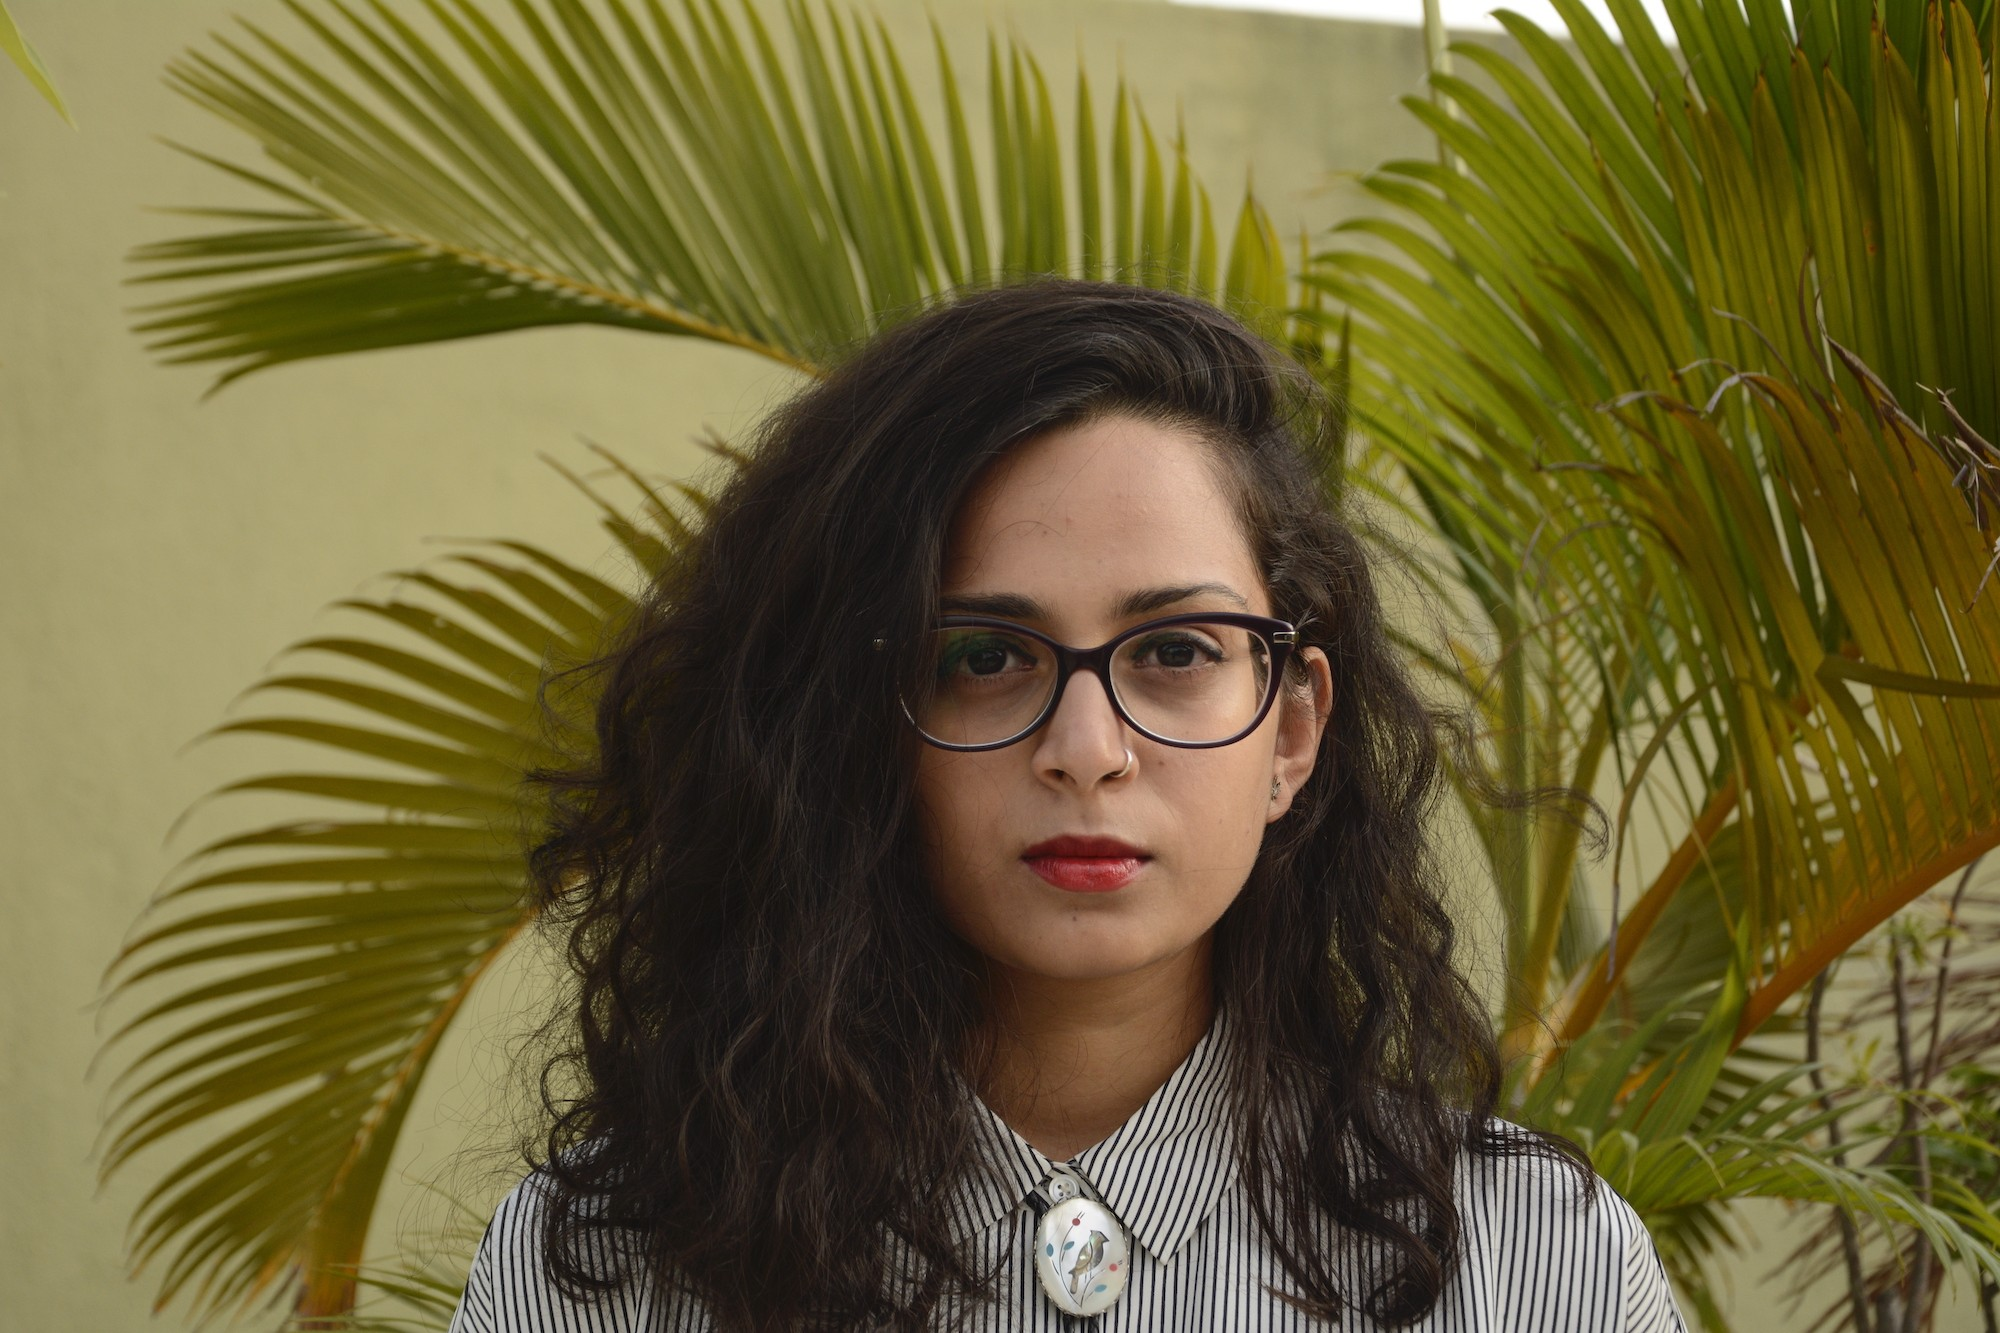 Aditi Machado stands in front of an areca palm, wearing red lipstick and black frame glasses.